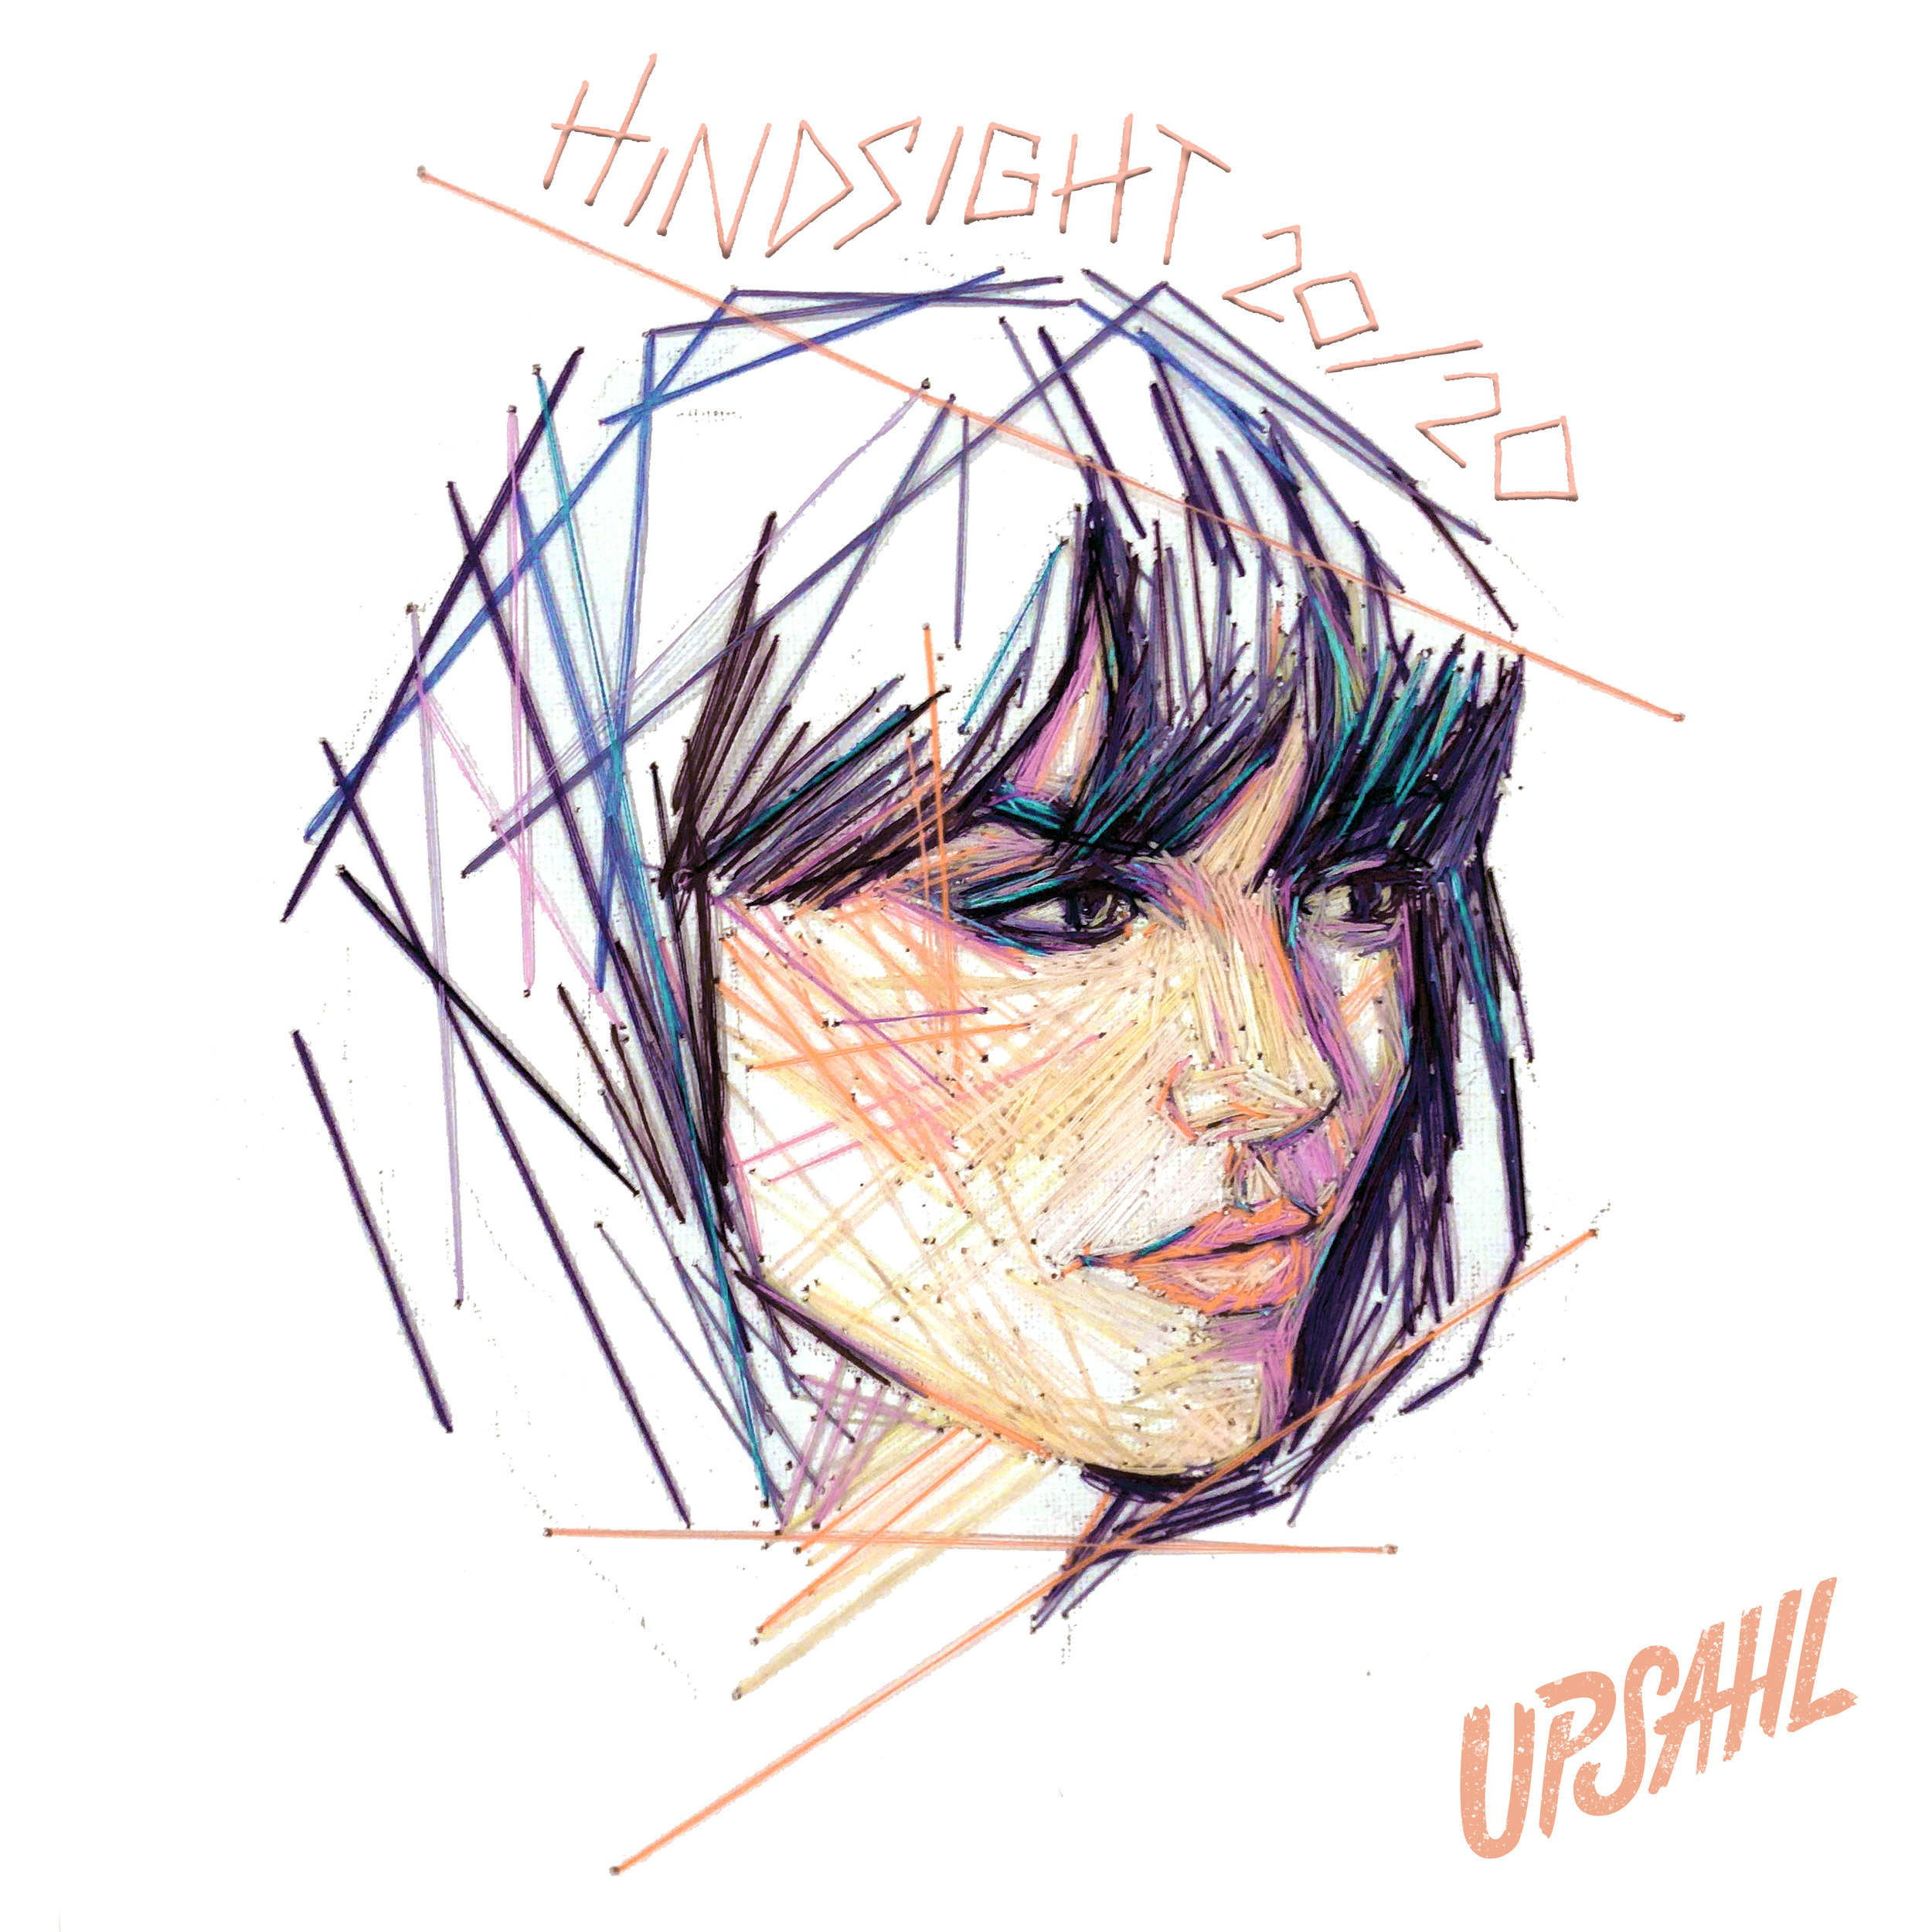 UPSAHL - Hindsight 2020 - Cover Art .jpg